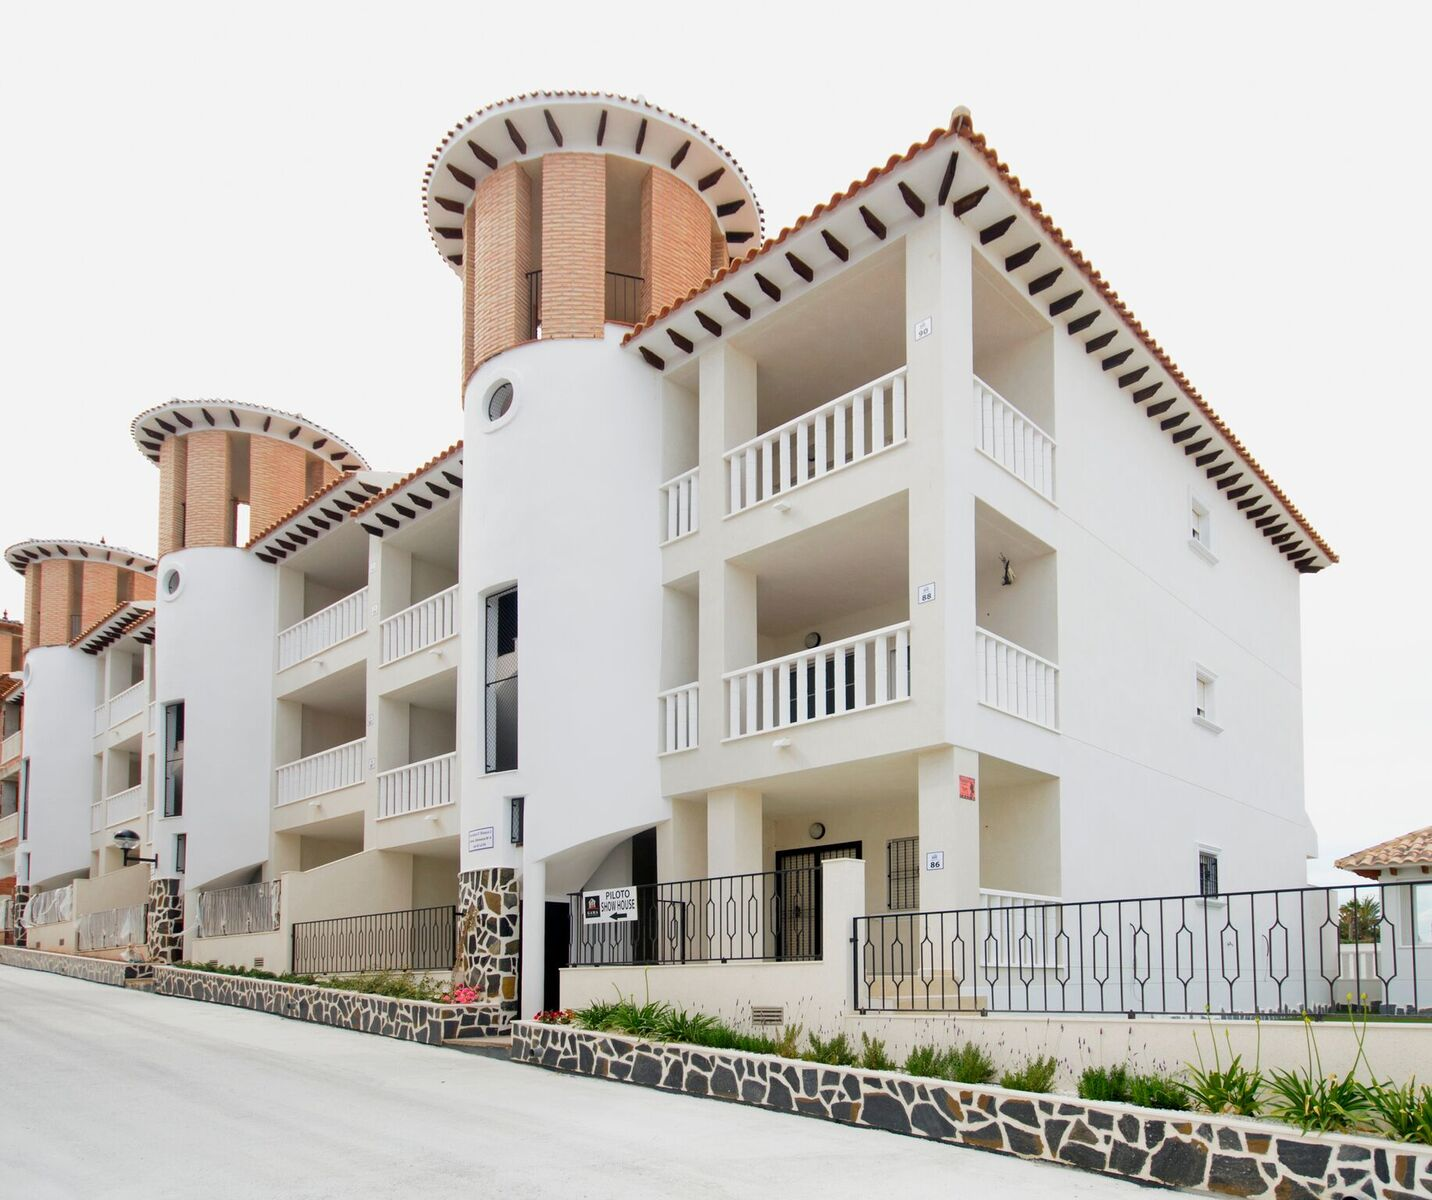 Apartments Listing: Pretty Apartments In El Pinet - La Marina